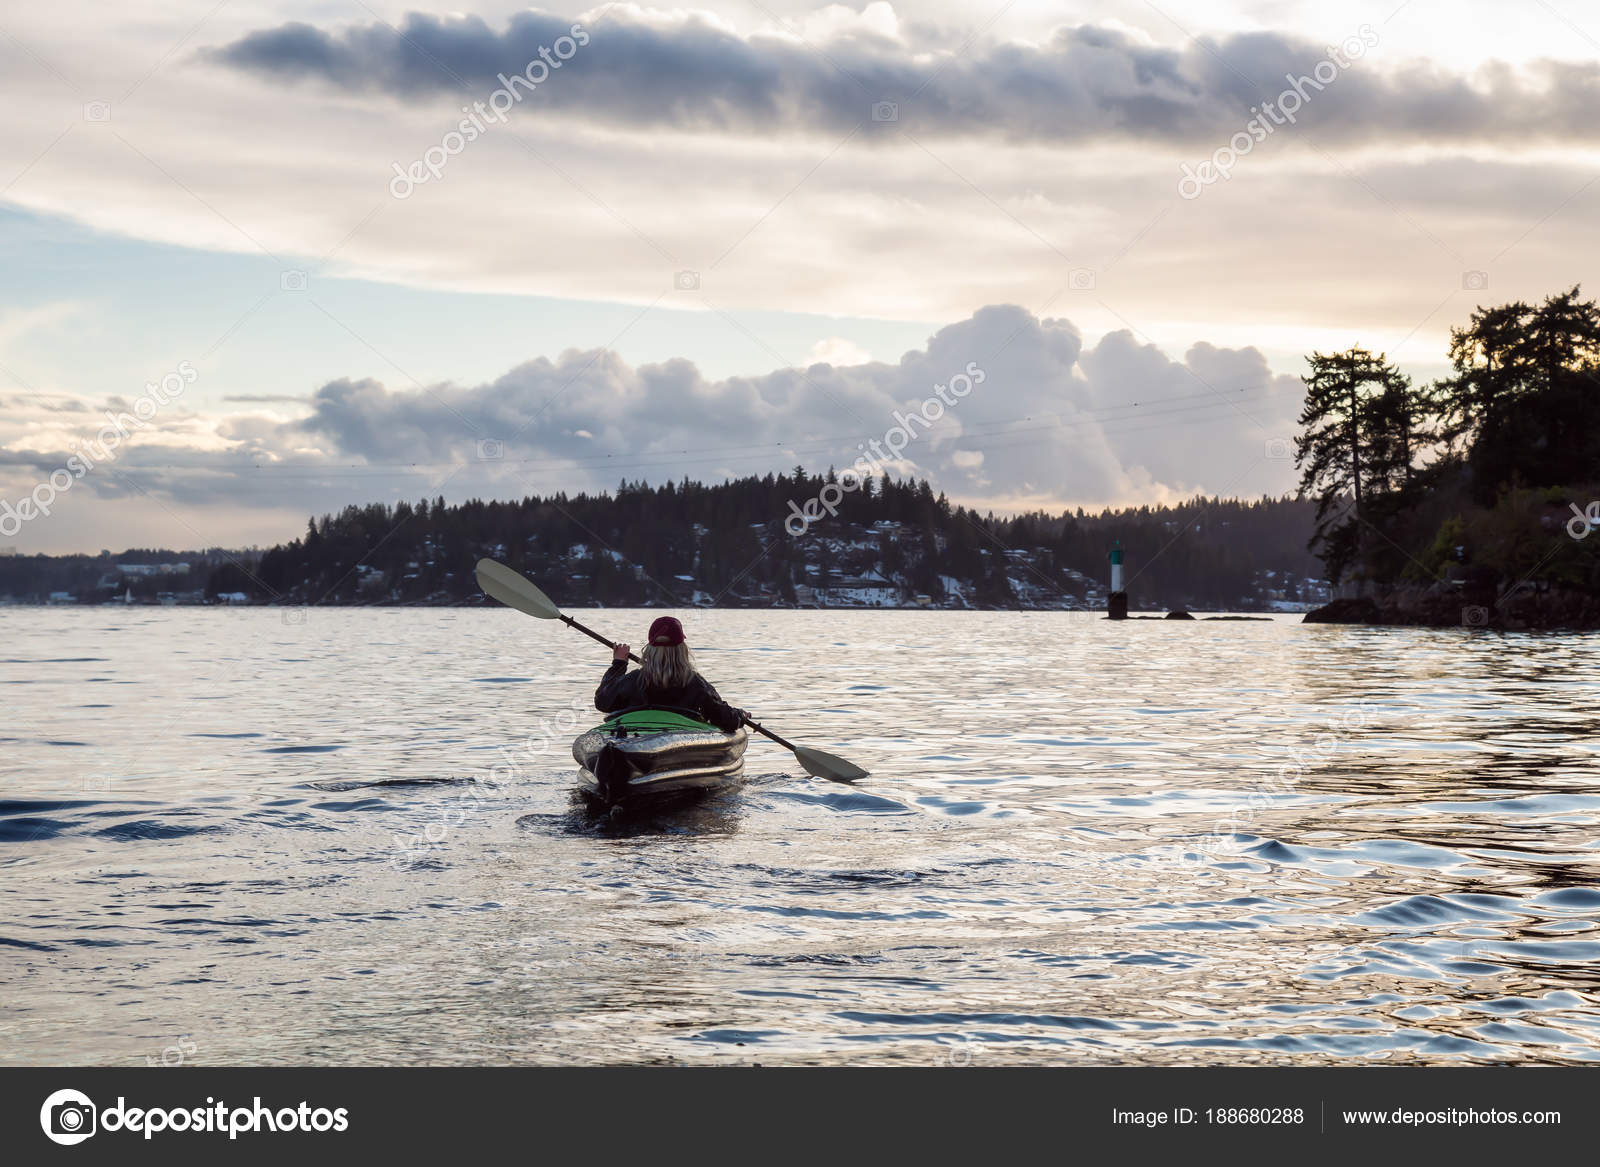 Adventurous Girl Is Kayaking On An Inflatable Kayak During A Vibrant Winter Sunset Taken In Indian Arm Deep Cove Vancouver BC Canada